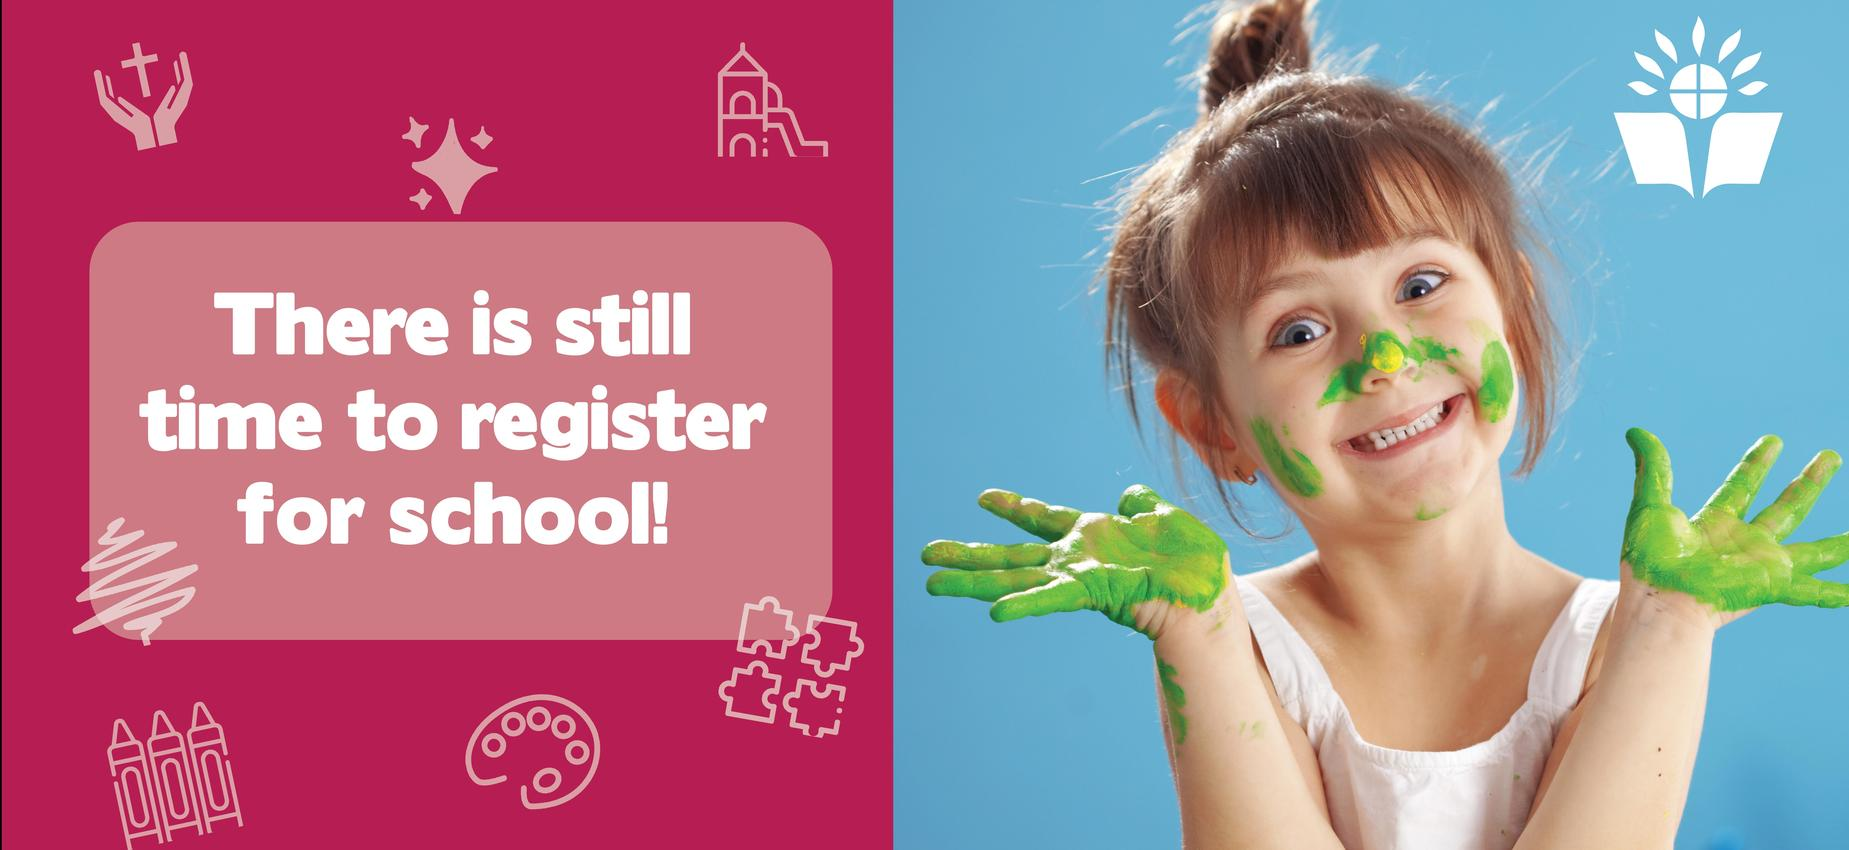 There is still time to register for school